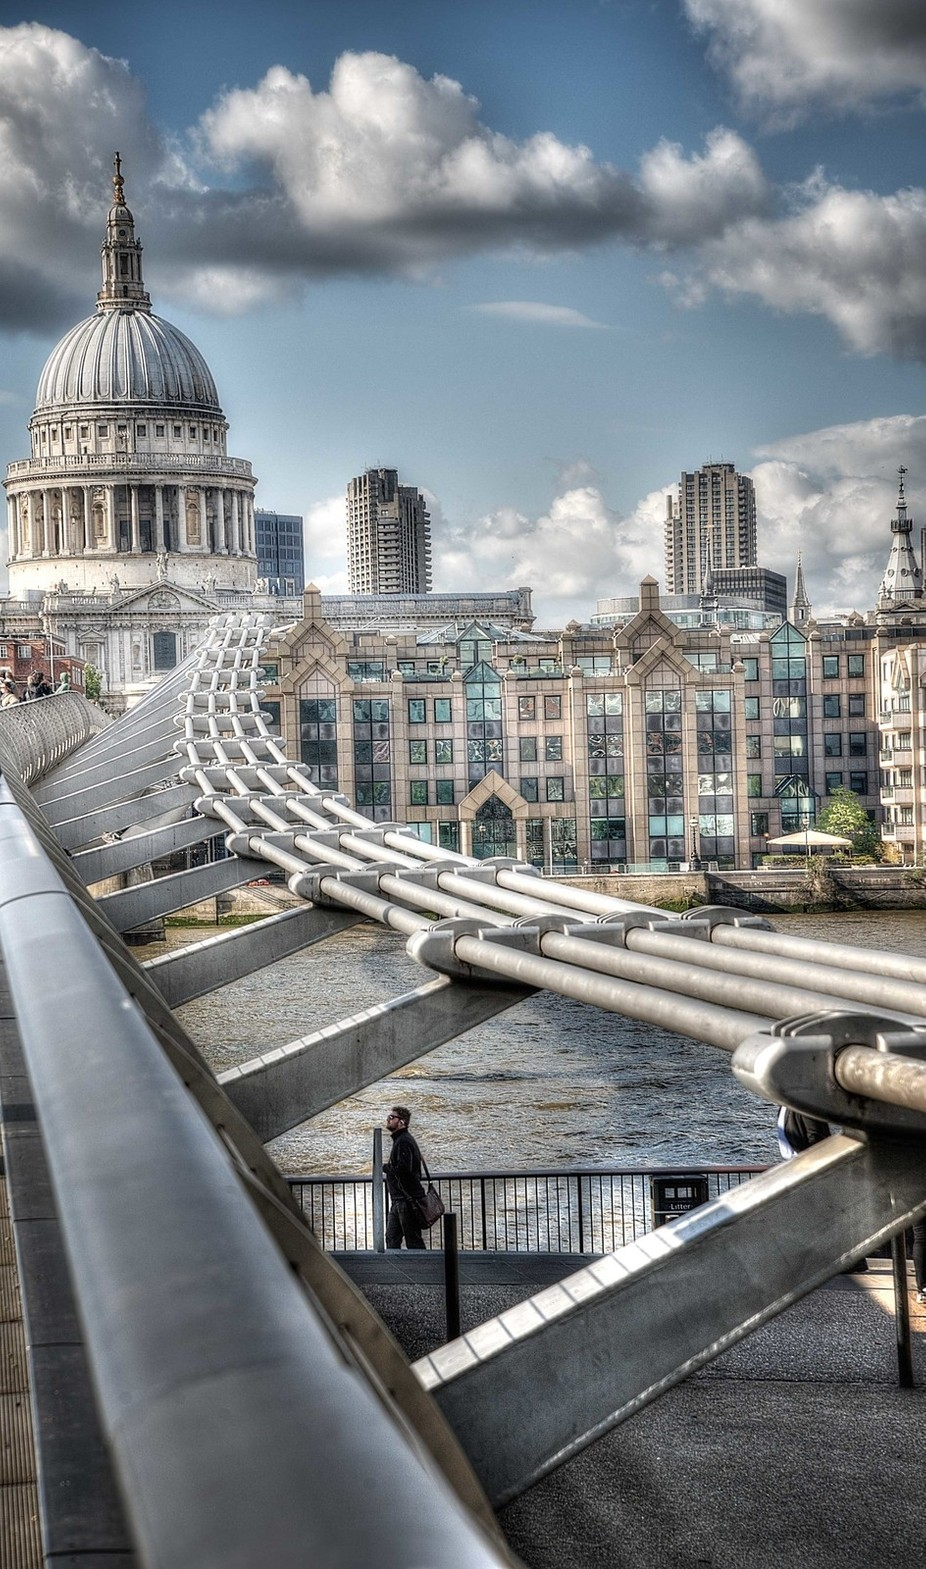 st pauls by bacon - Discover Europe Photo Contest